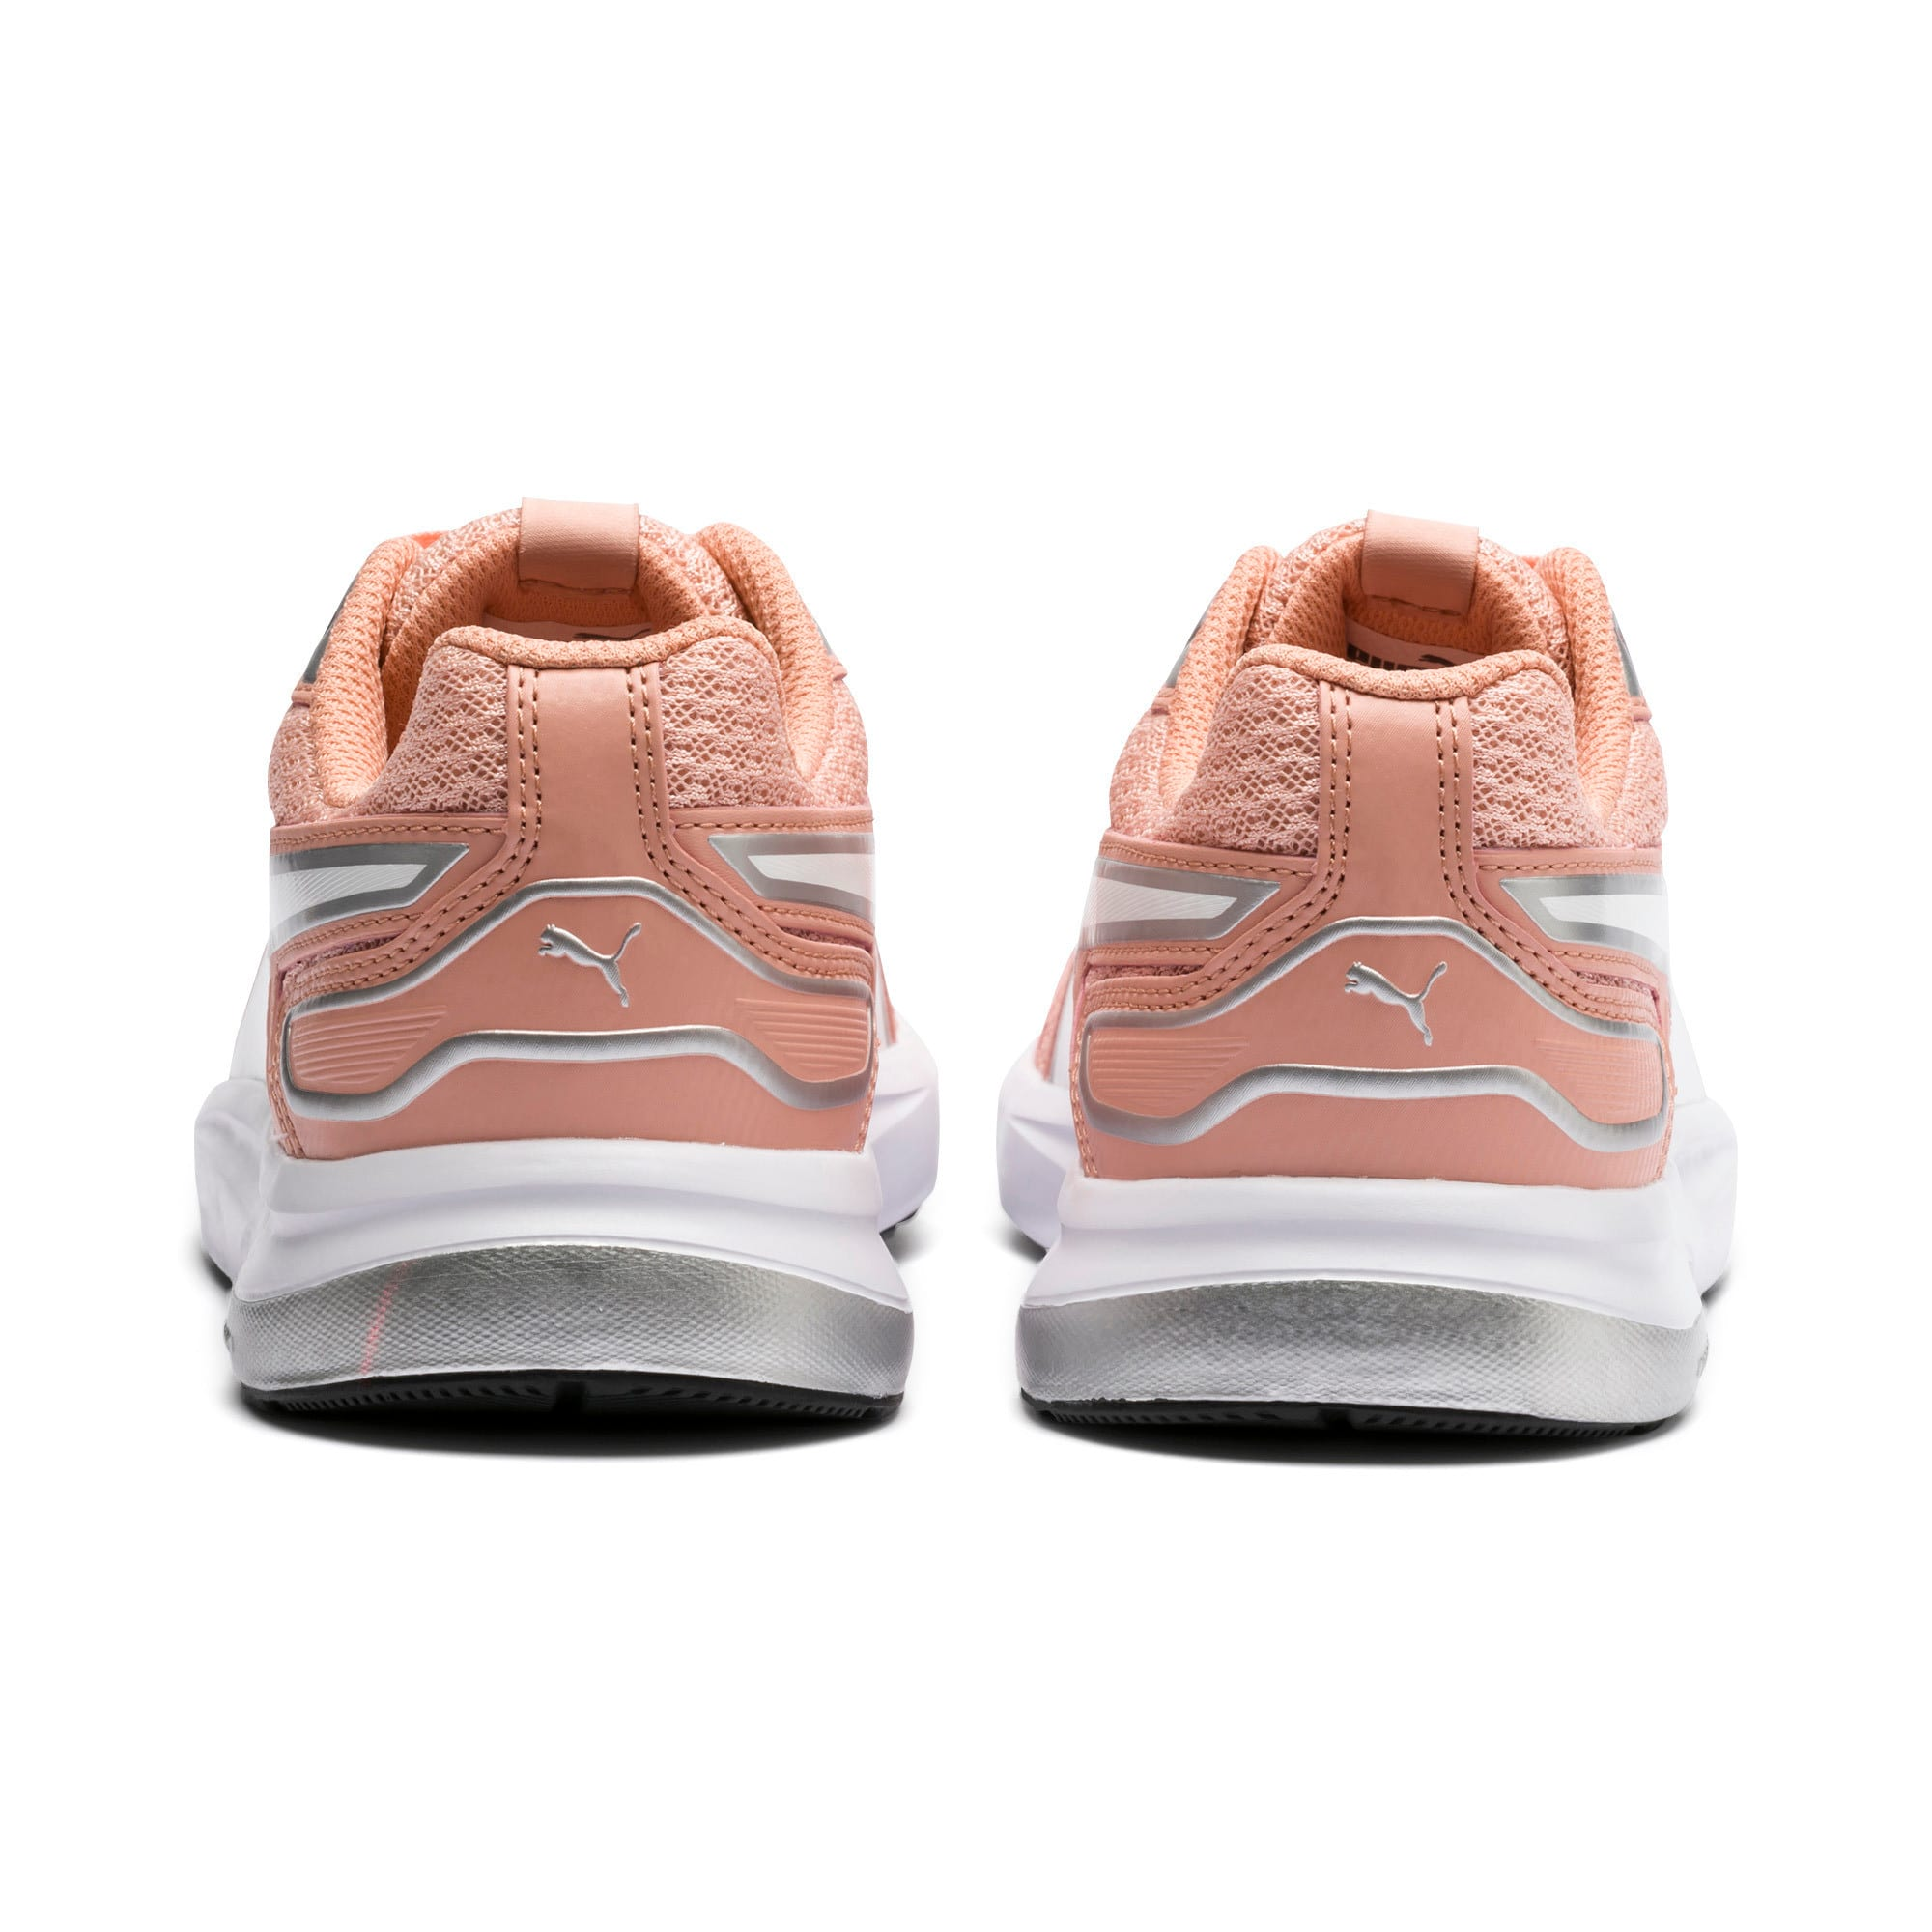 Thumbnail 4 of Escaper Tech Sneakers, Peach Bud-Silver-Puma White, medium-IND